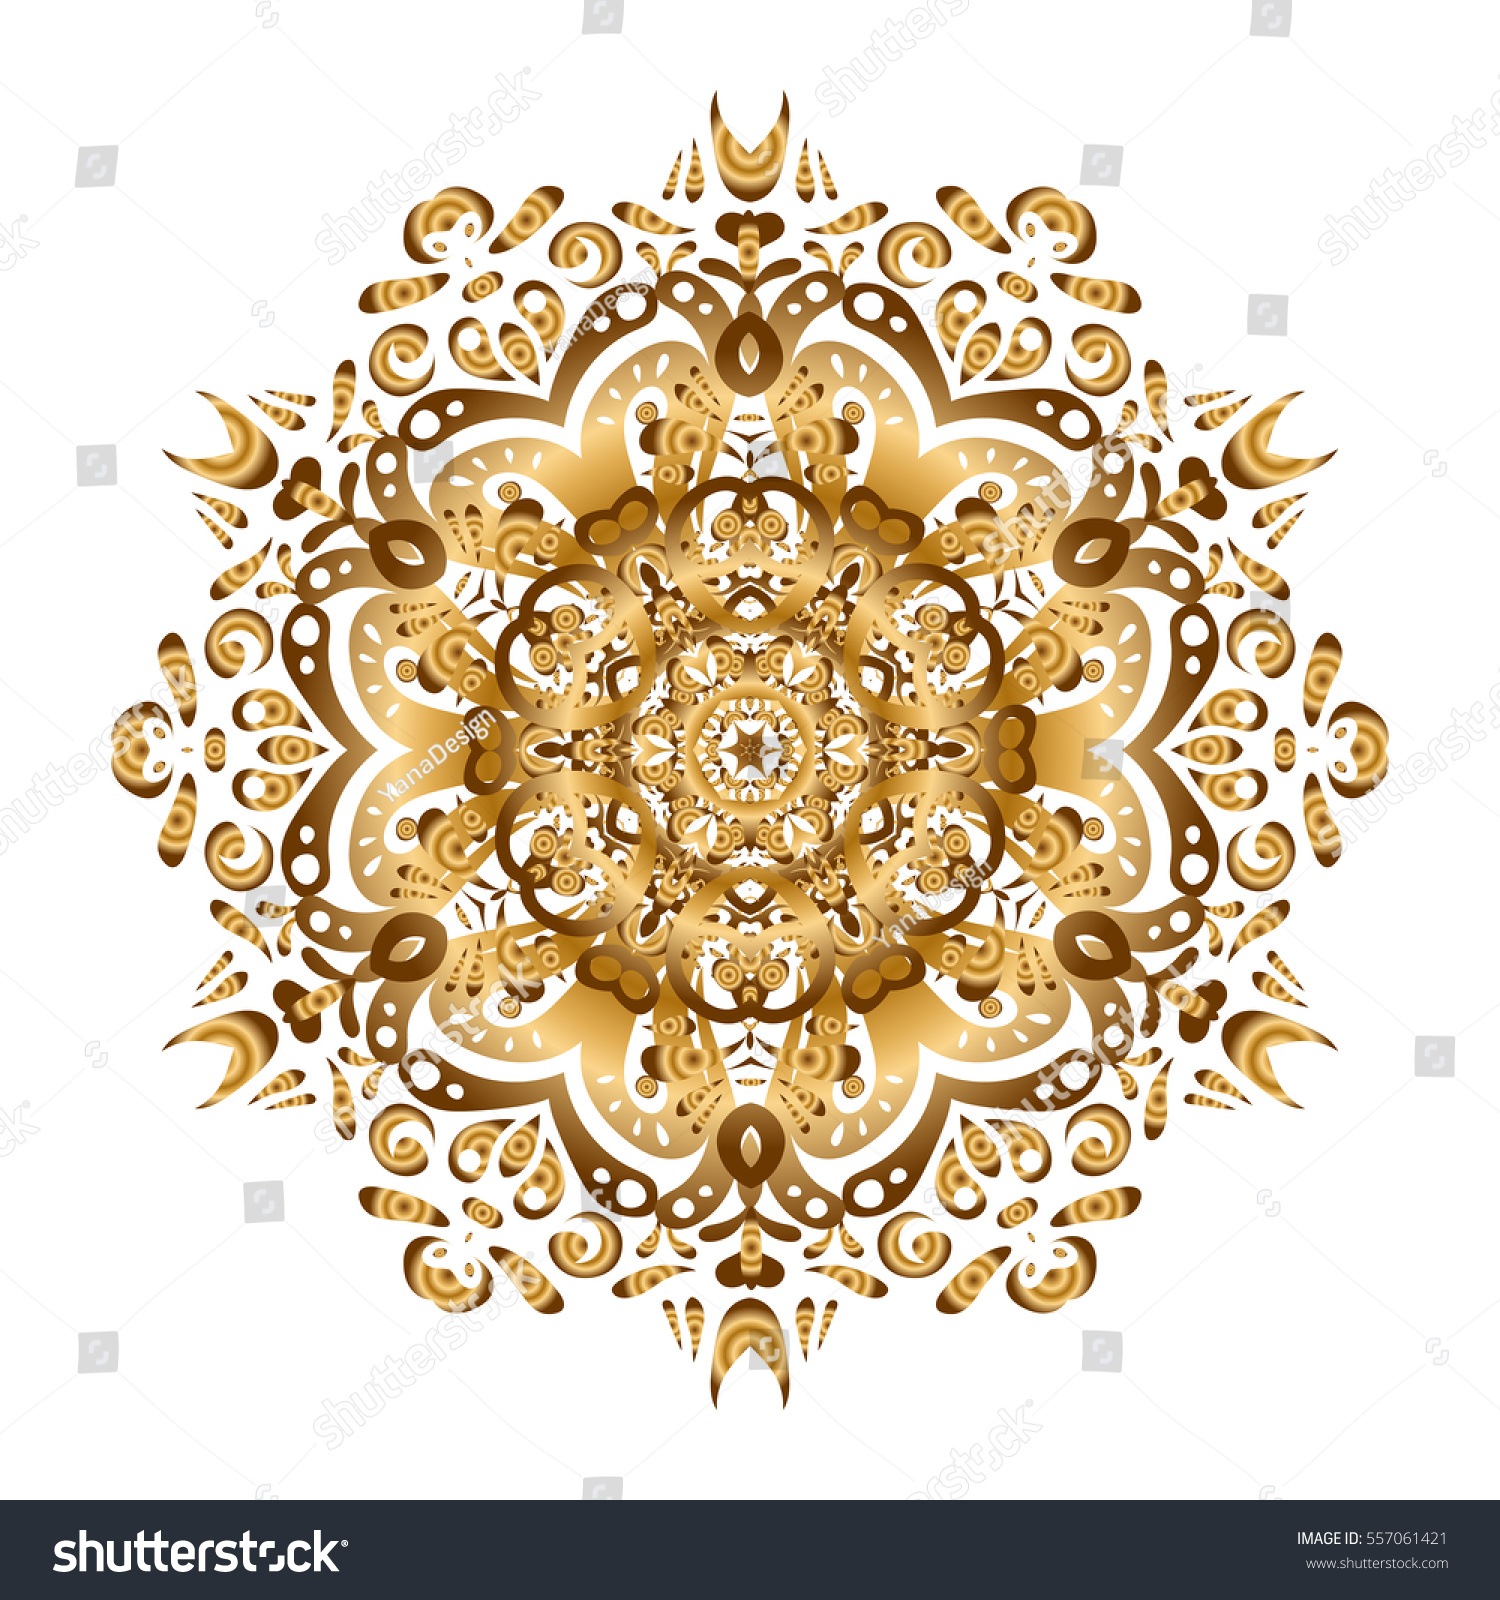 Round flower ornament invitation golden mandala stock illustration round flower ornament invitation with golden mandala design element square invite template decorative stopboris Image collections